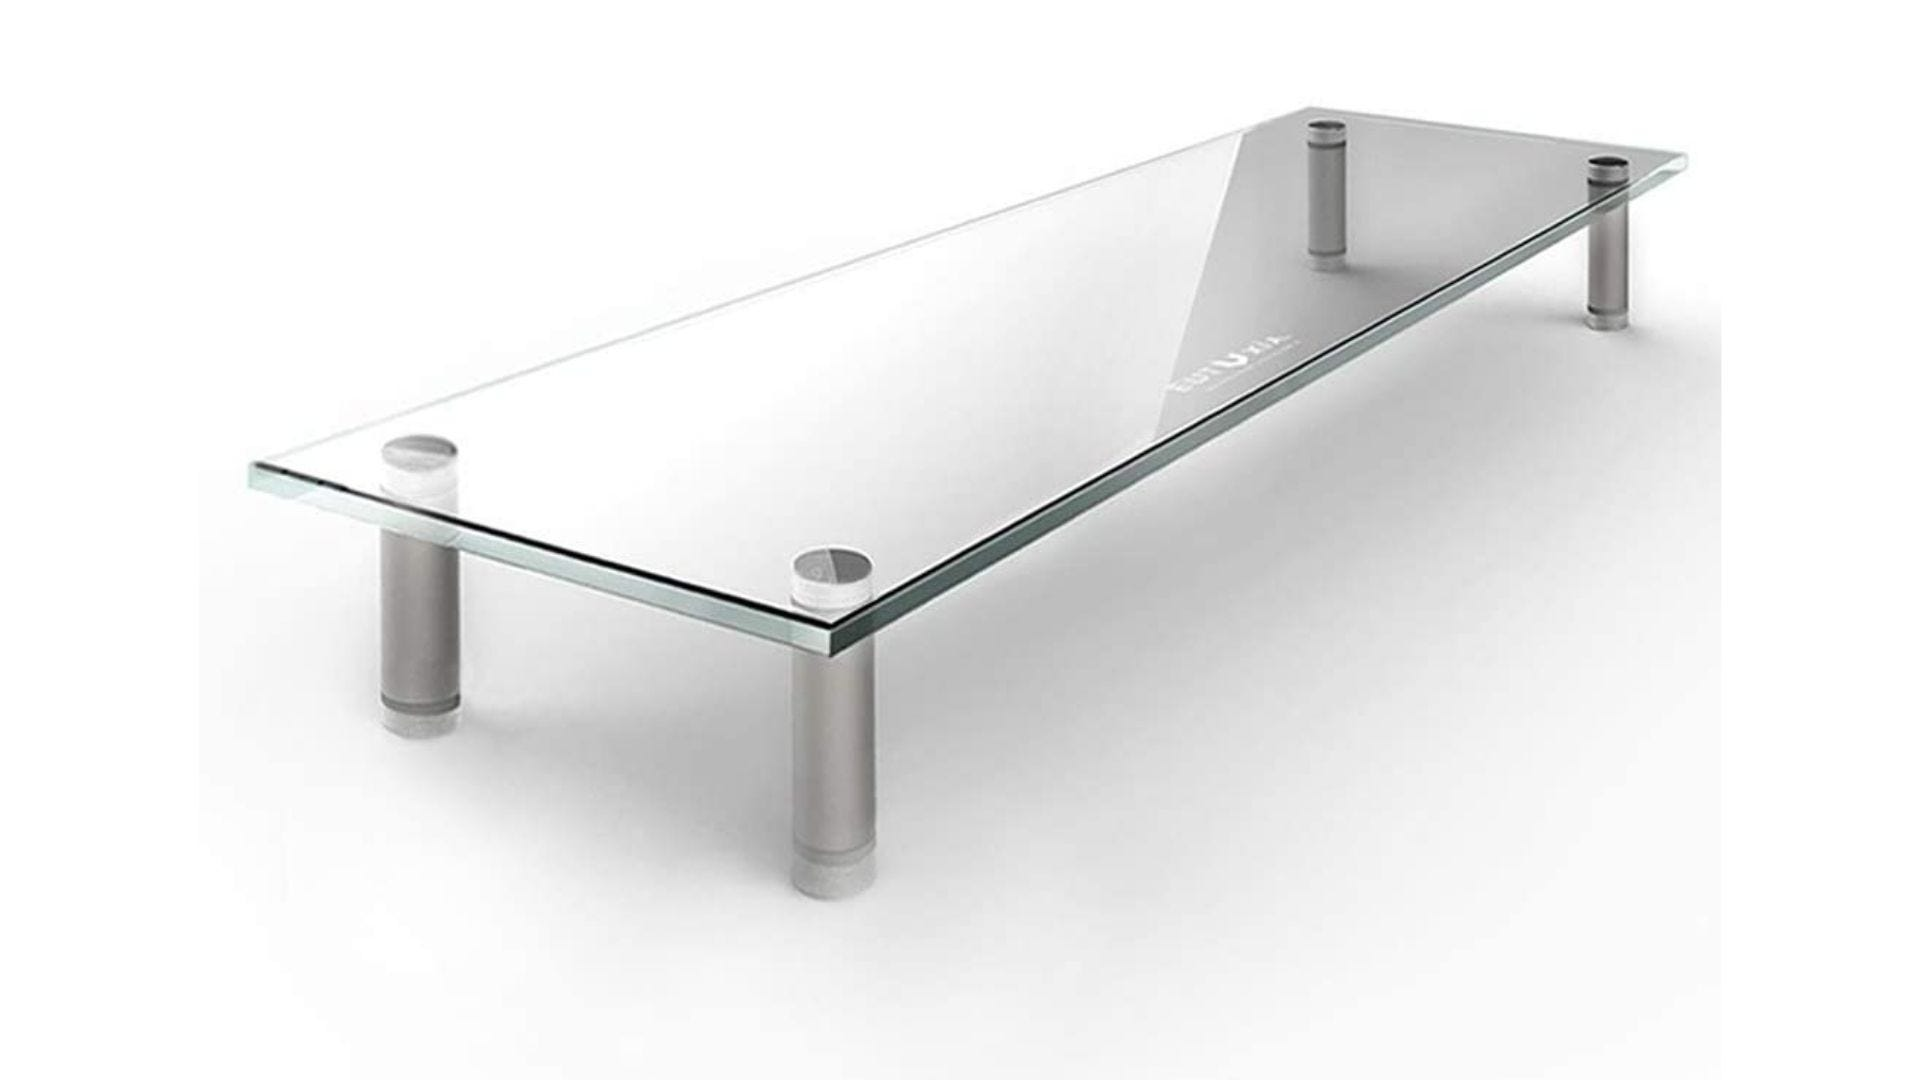 Eutuxia Type-M Tempered Glass Monitor Stand